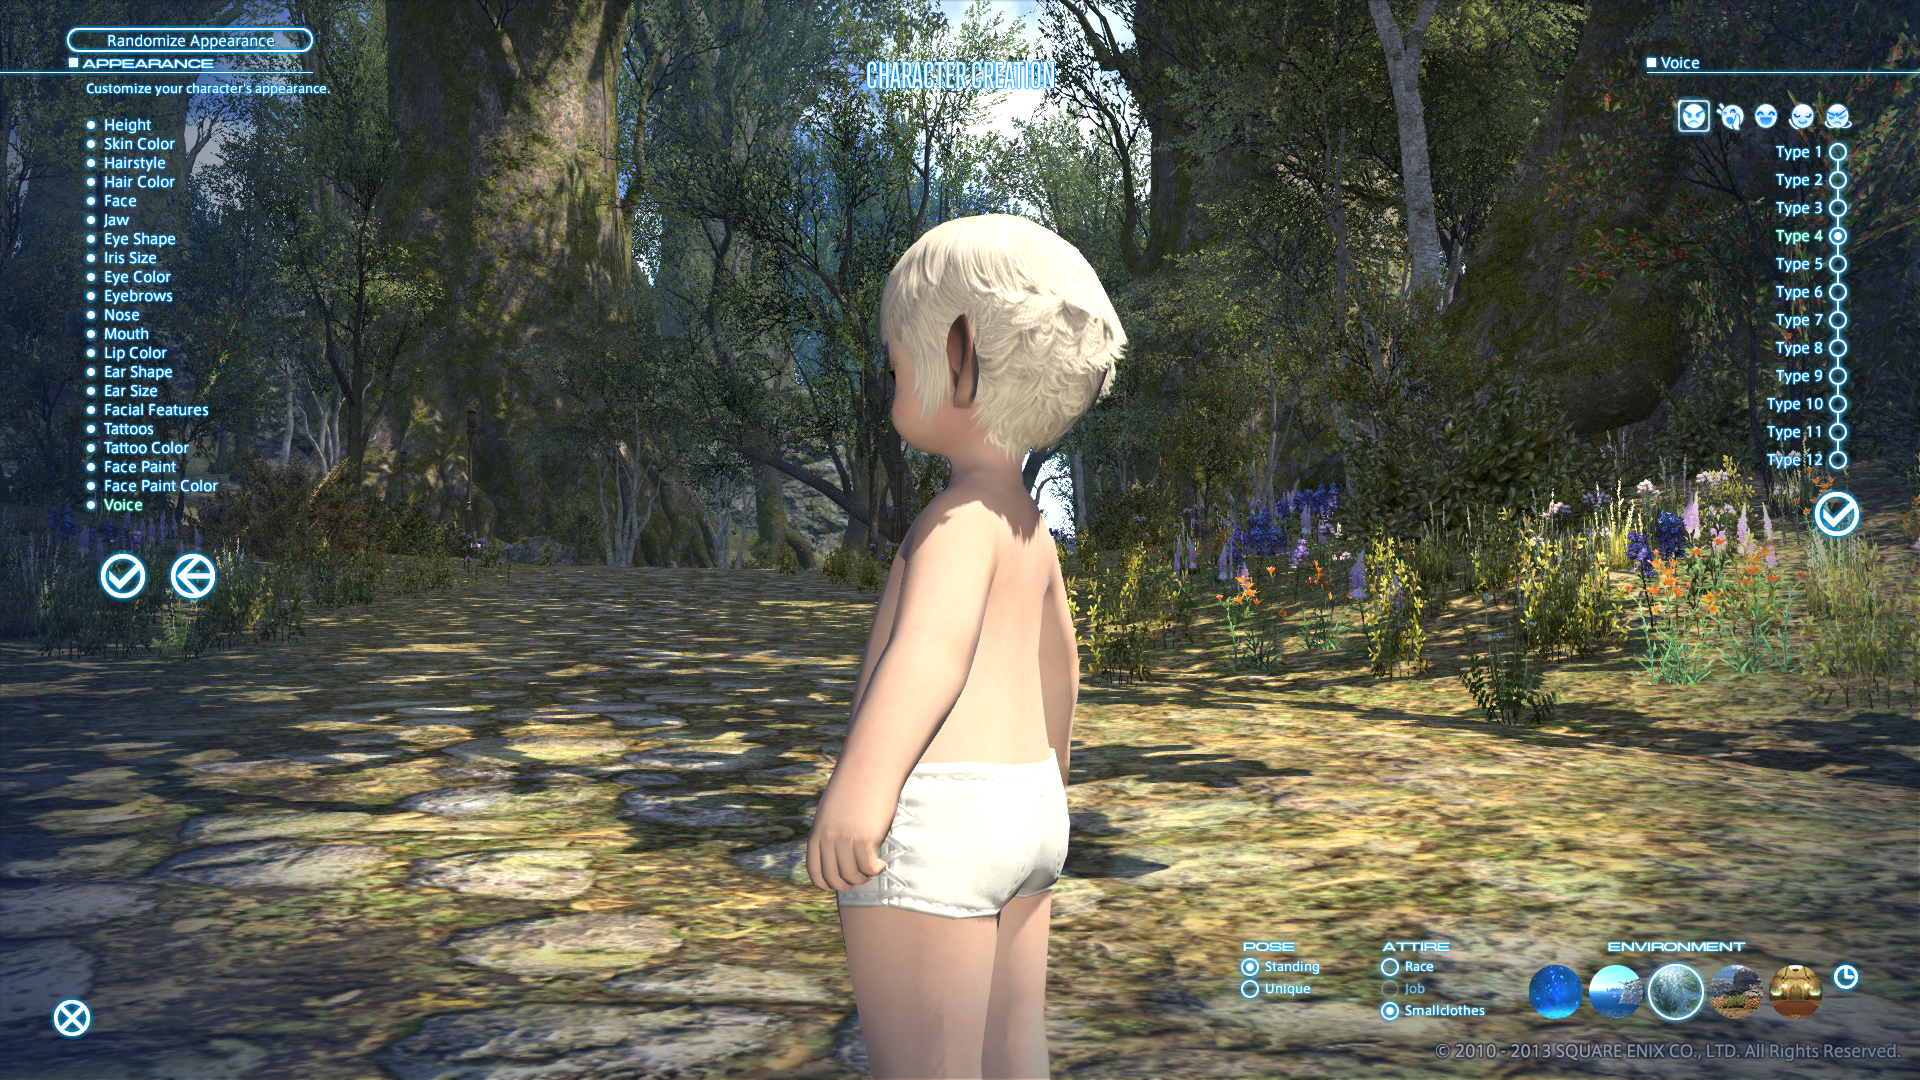 judah r ffxiv this hair ffxi character like color what green more help pinkish look akin cause laughing stop cannot eyesmouth expression website official best here found also actually match recreating grown accustomed quite personally pictures your benchmark going heres style just char post slightly darker edit2 pinkredish